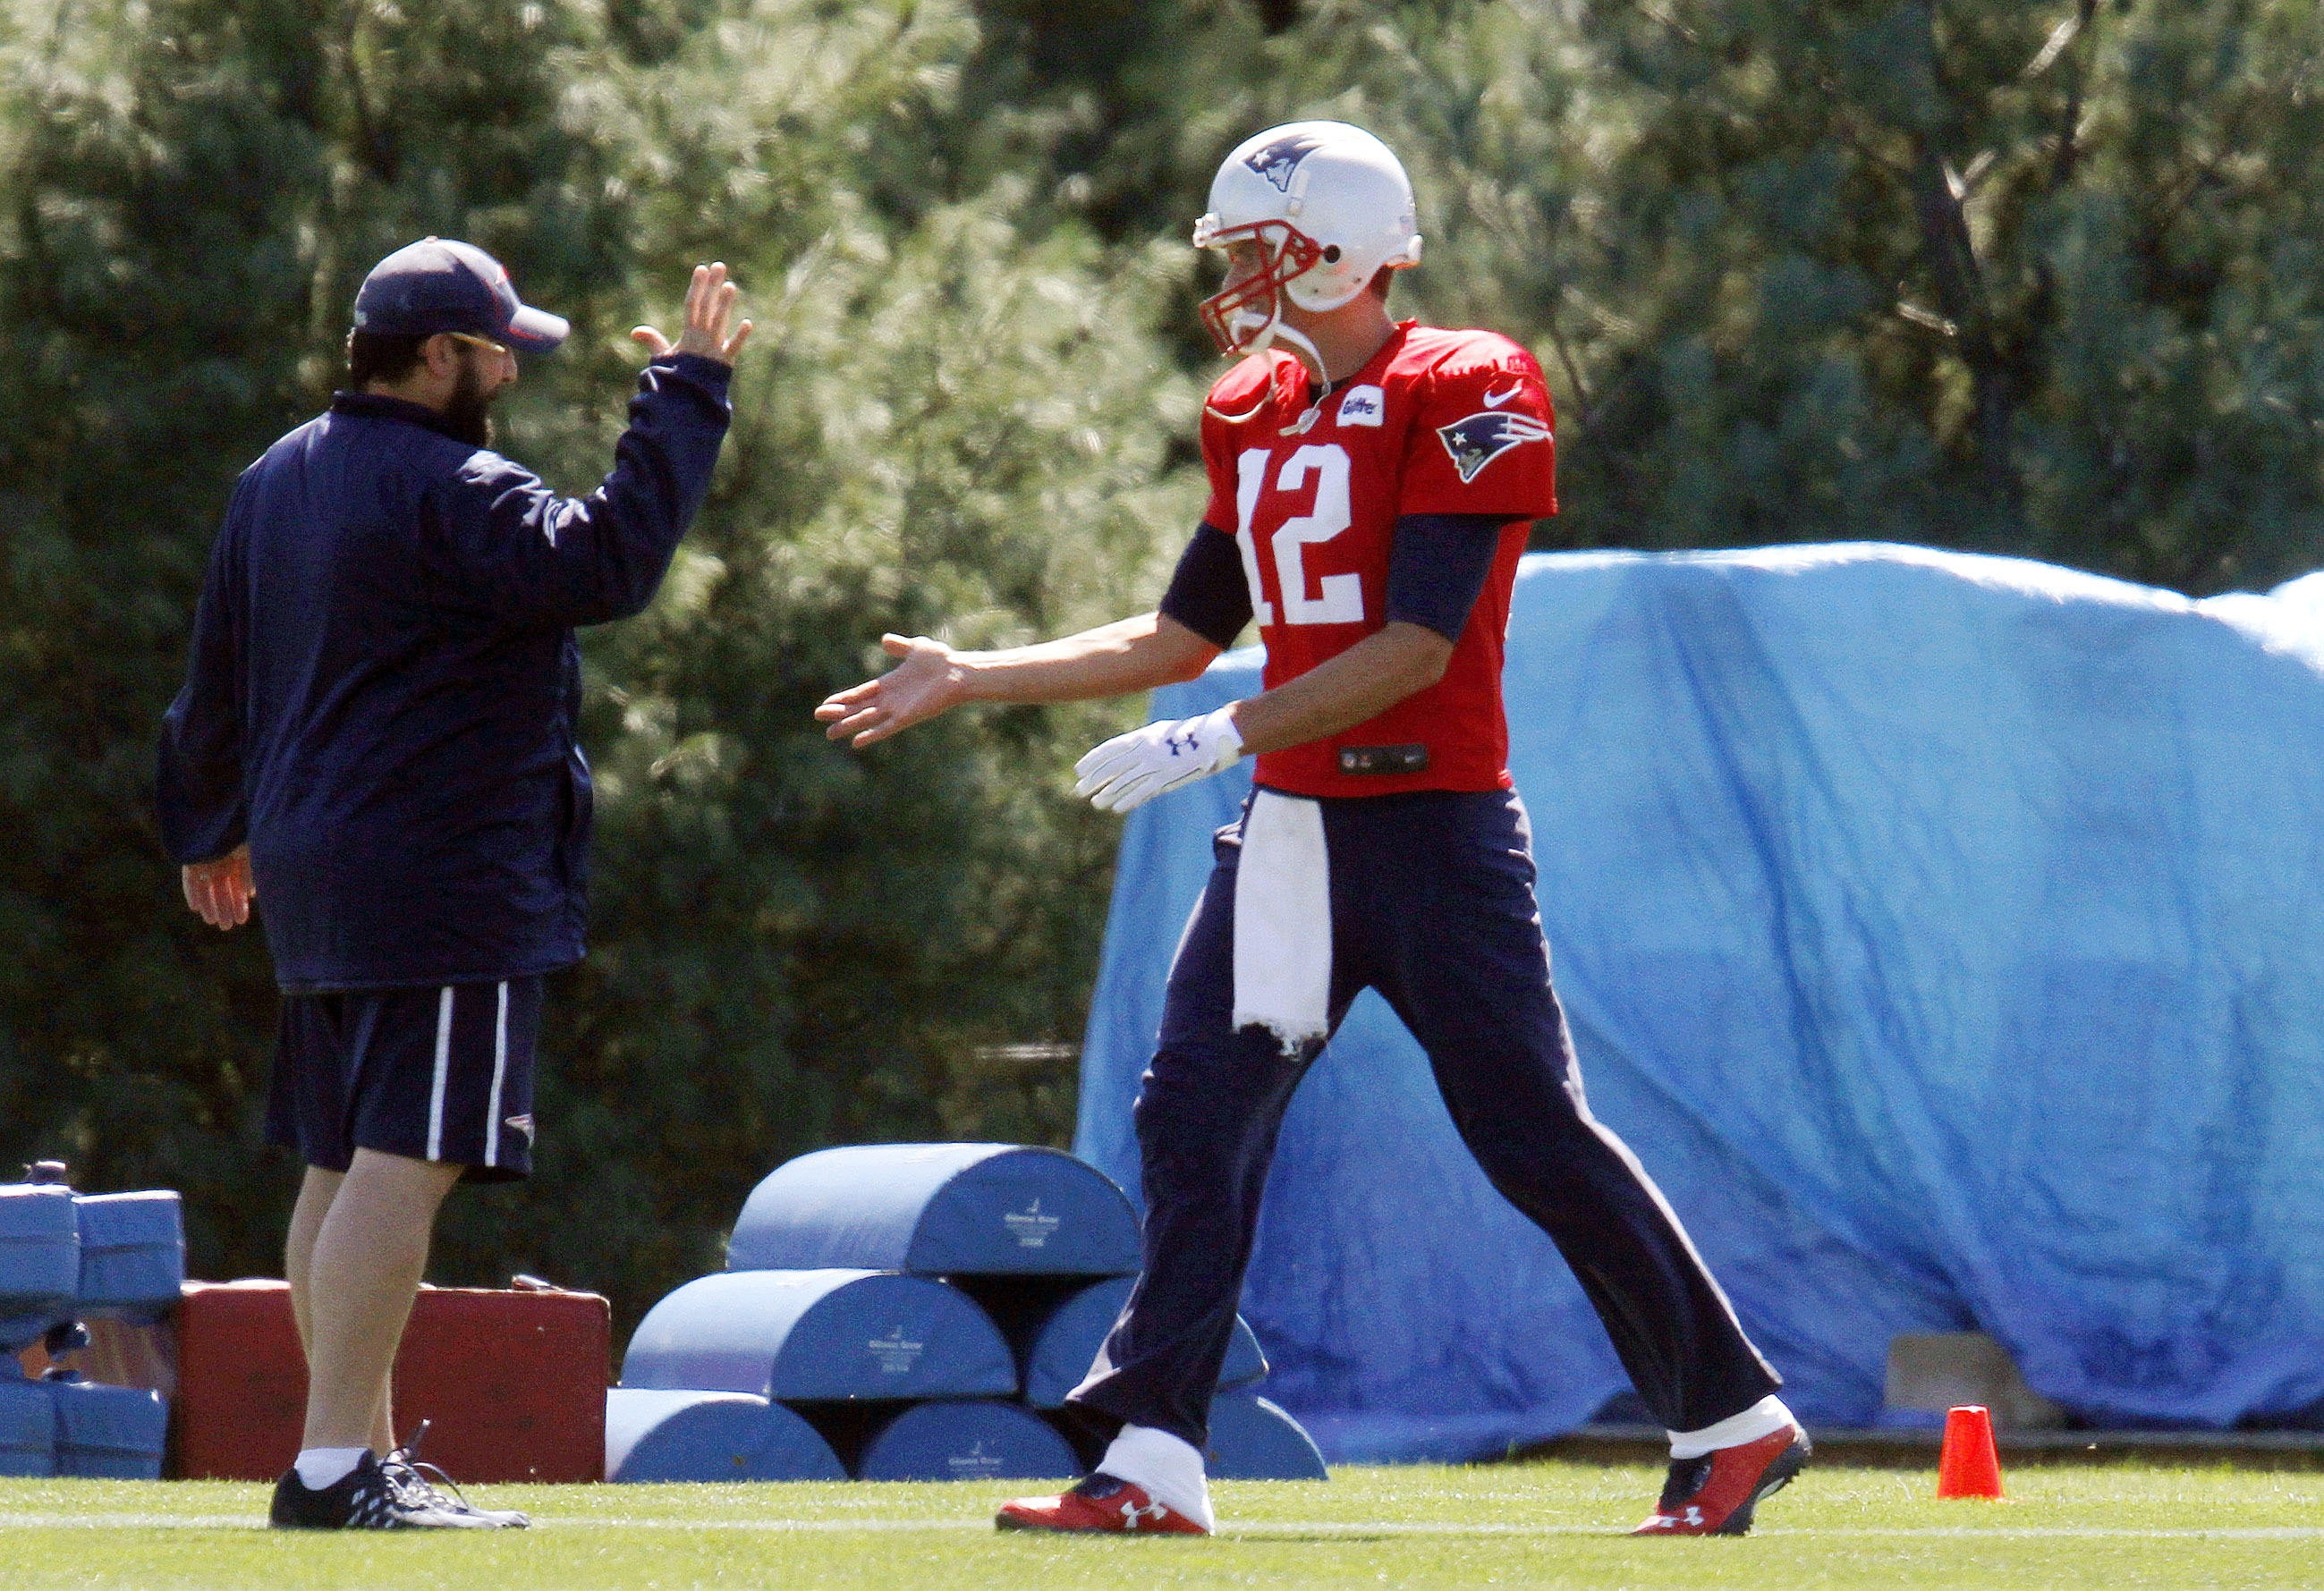 New England Patriots football quarterback Tom Brady (12) greets New England Patriots defensive coordinator Matt Patricia, left, at the start of practice Saturday, Sept. 5, 2015, in Foxborough, Mass. A federal judge overturned Brady's four-game suspension